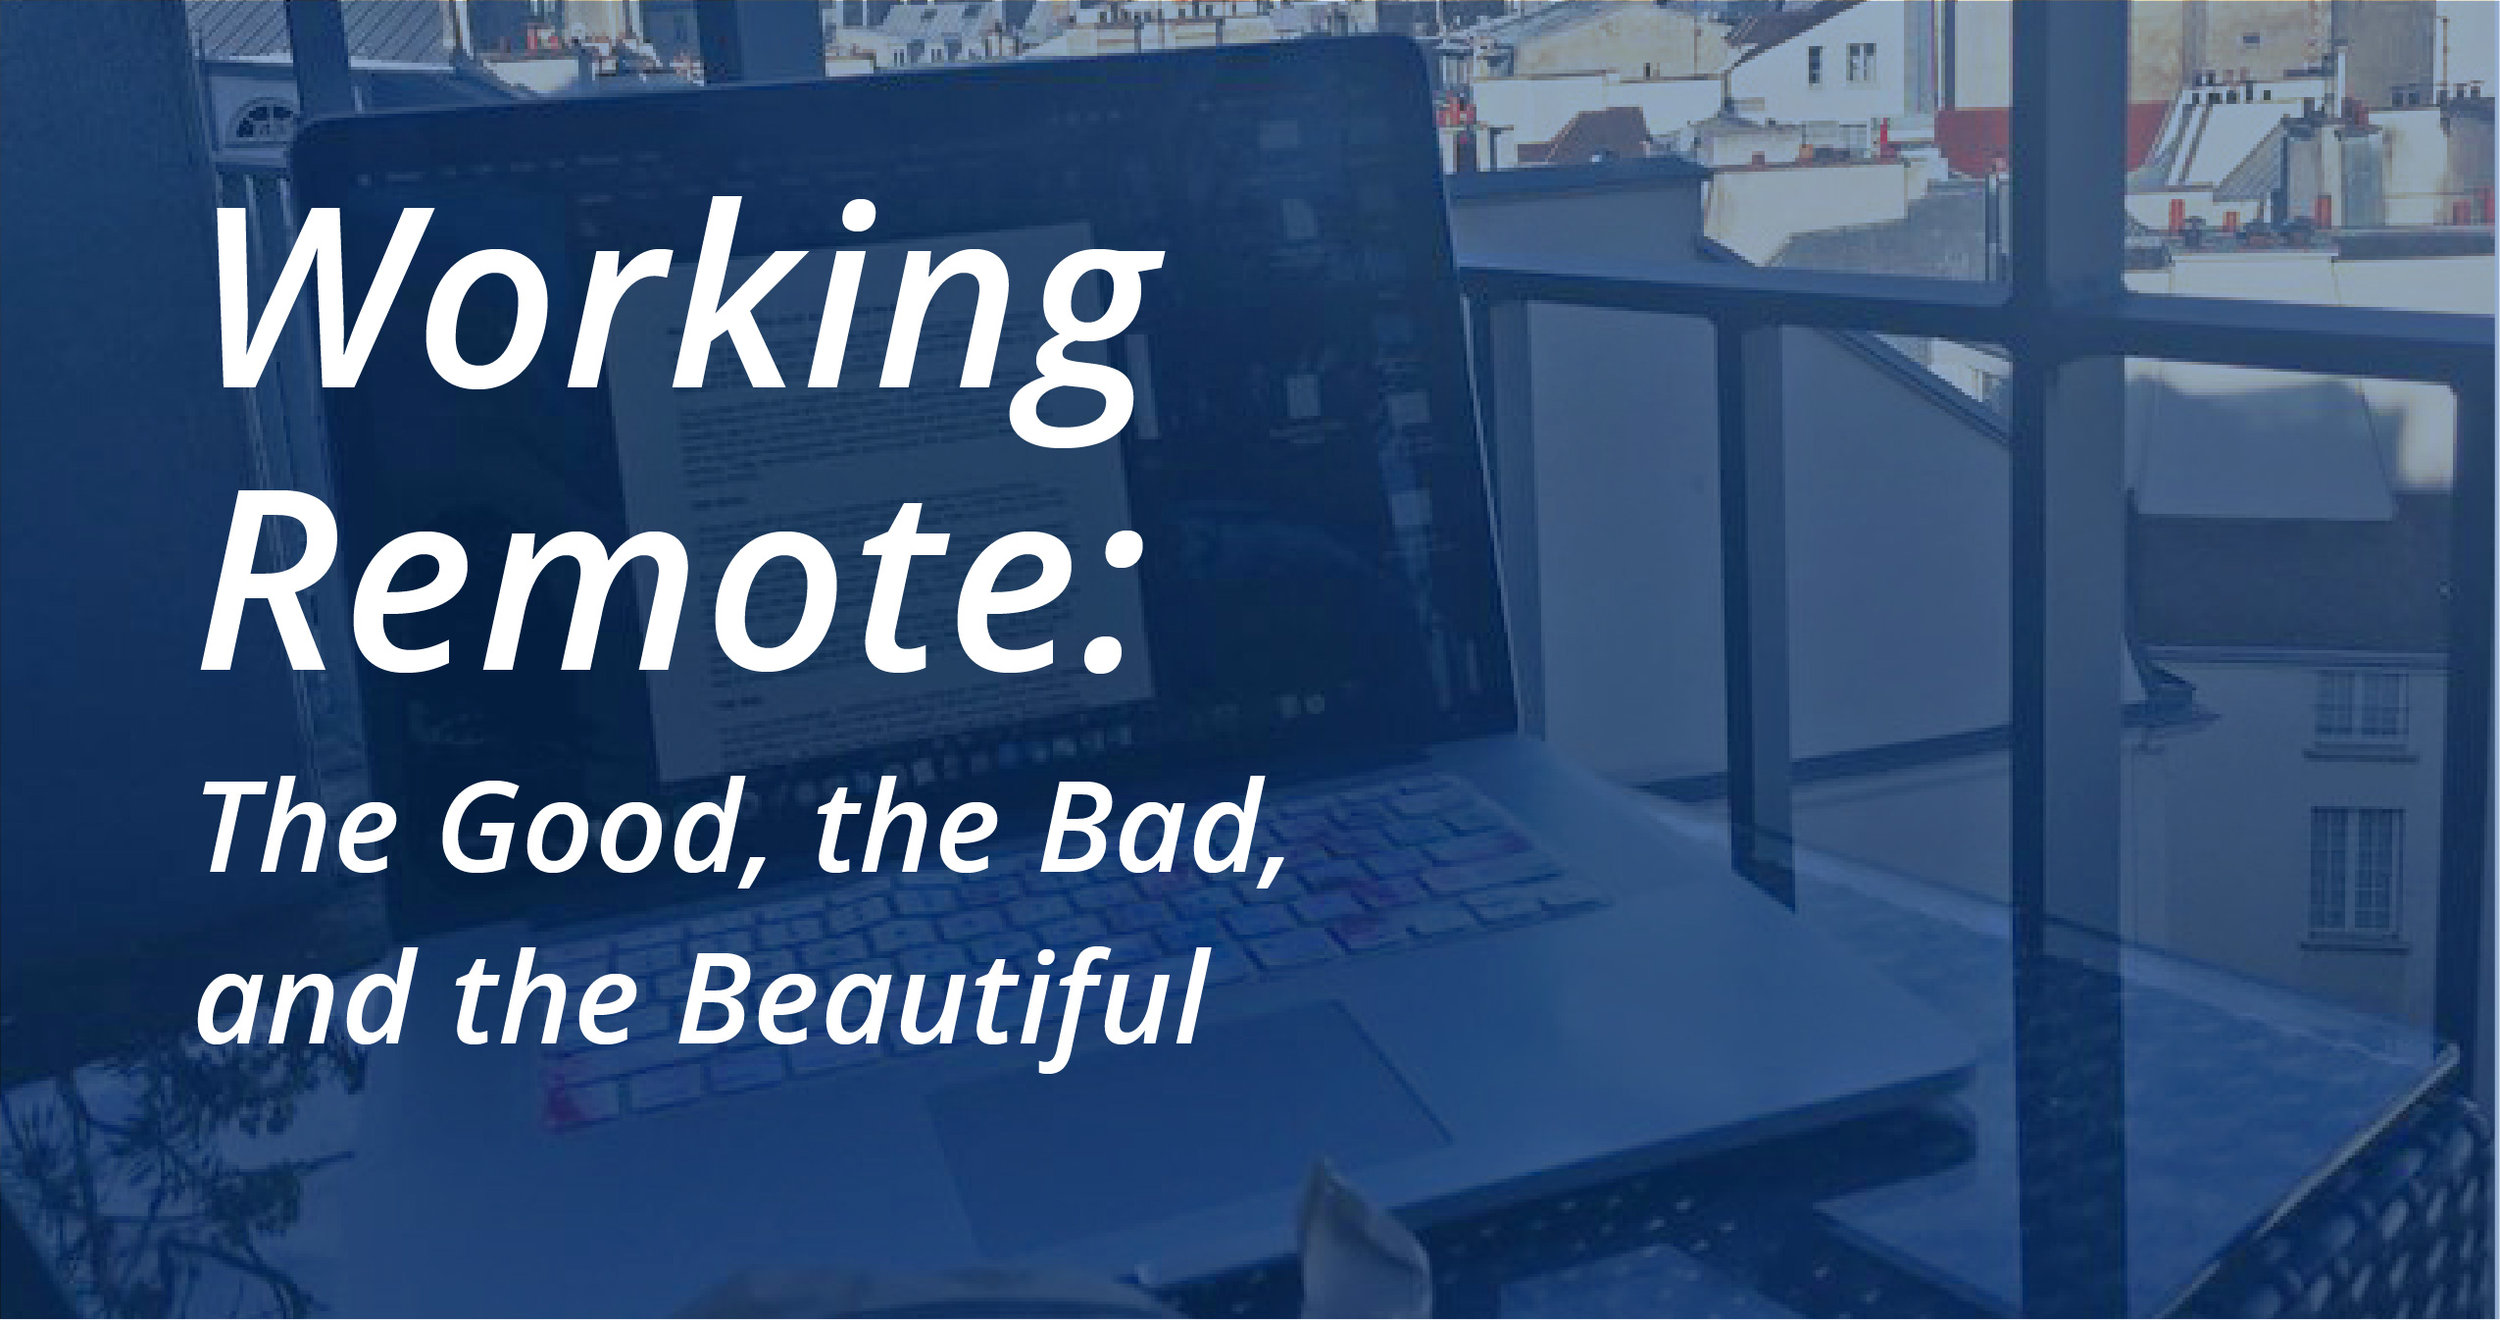 Working Remote by Current 120, Traverse City's website design and branding agency.